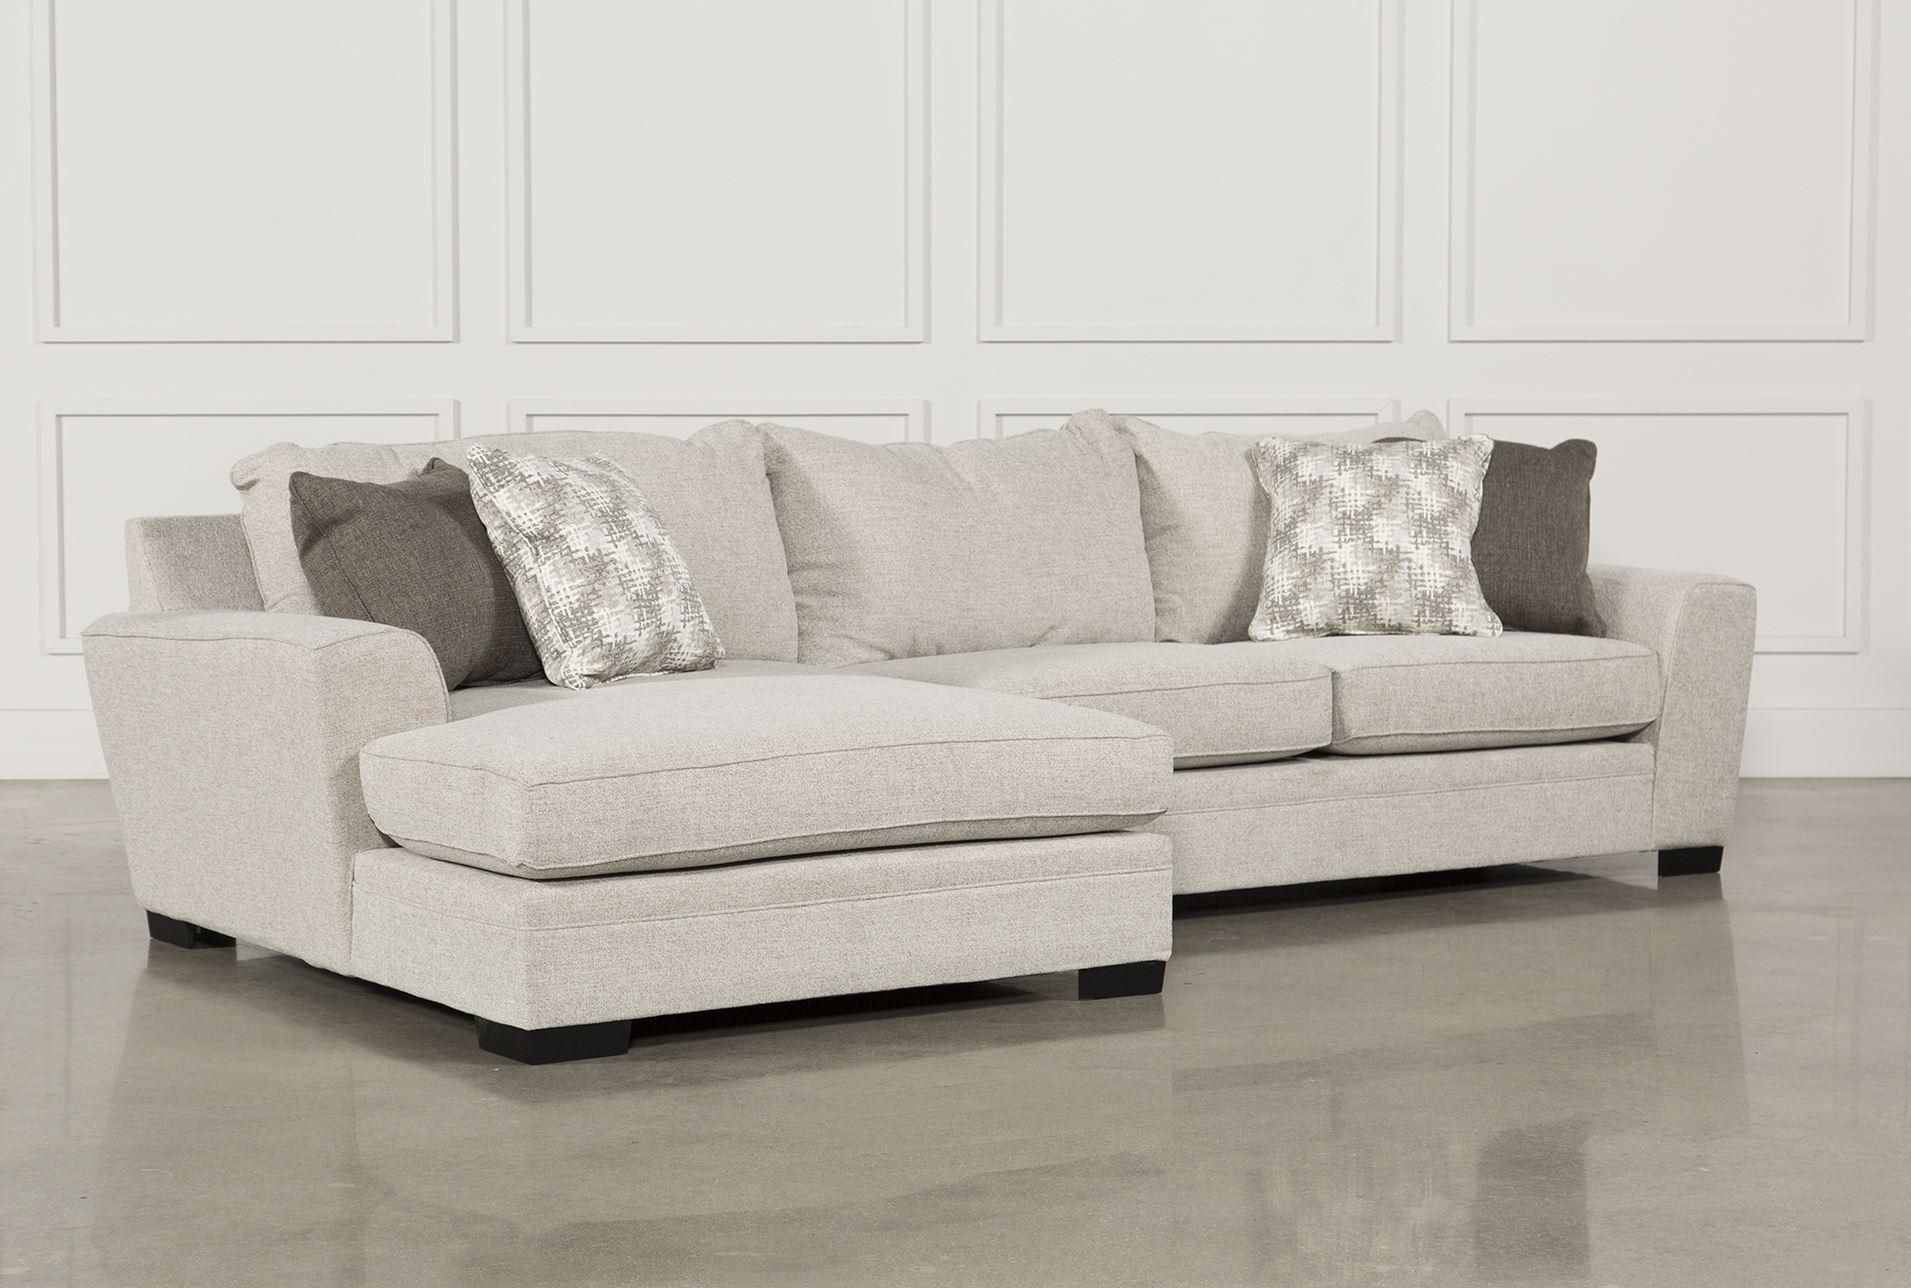 Delano 2 Piece Sectional W Laf Oversized Chaise Beige Sofas Living Spaces Sofa Sectional Sofa With Chaise Sectional Sofa